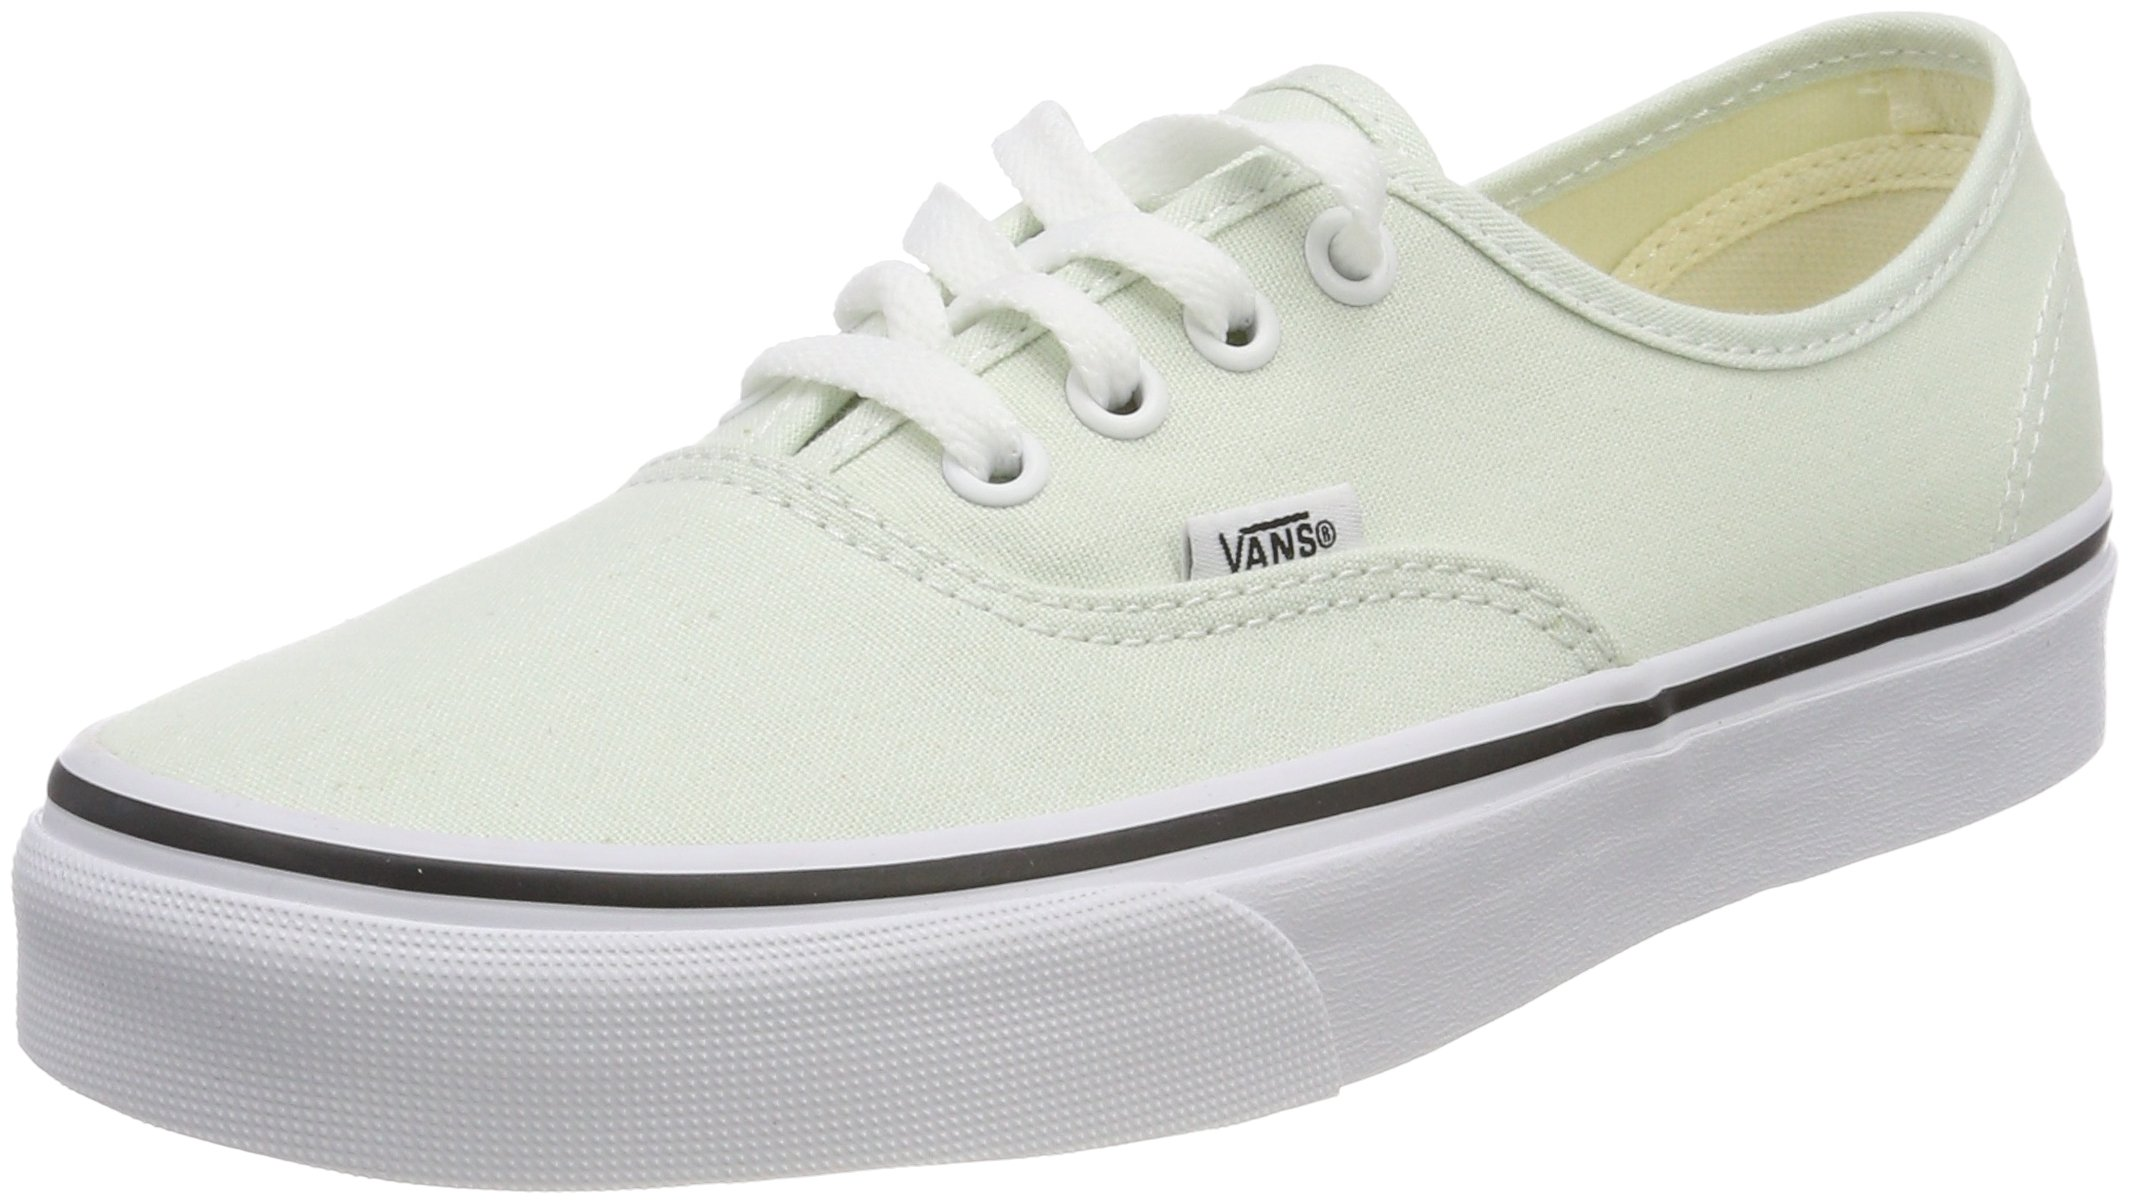 3c5497b5d0fc Galleon - Vans Women s Authentic Trainers